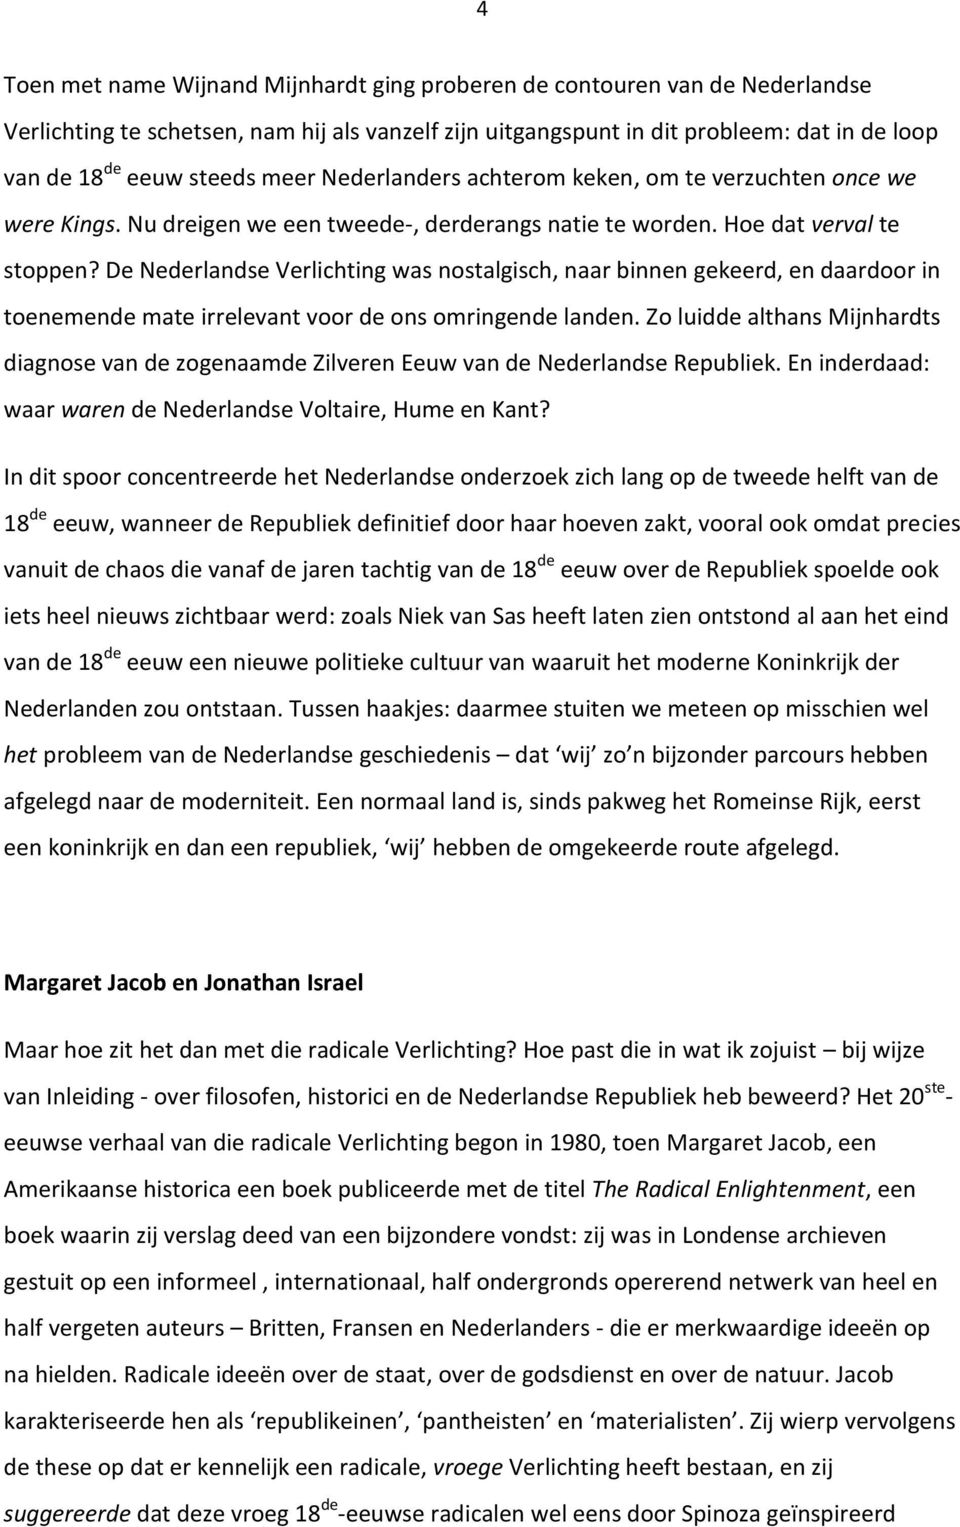 http://docplayer.nl/docs-images/48/9540480/images/page_4.jpg